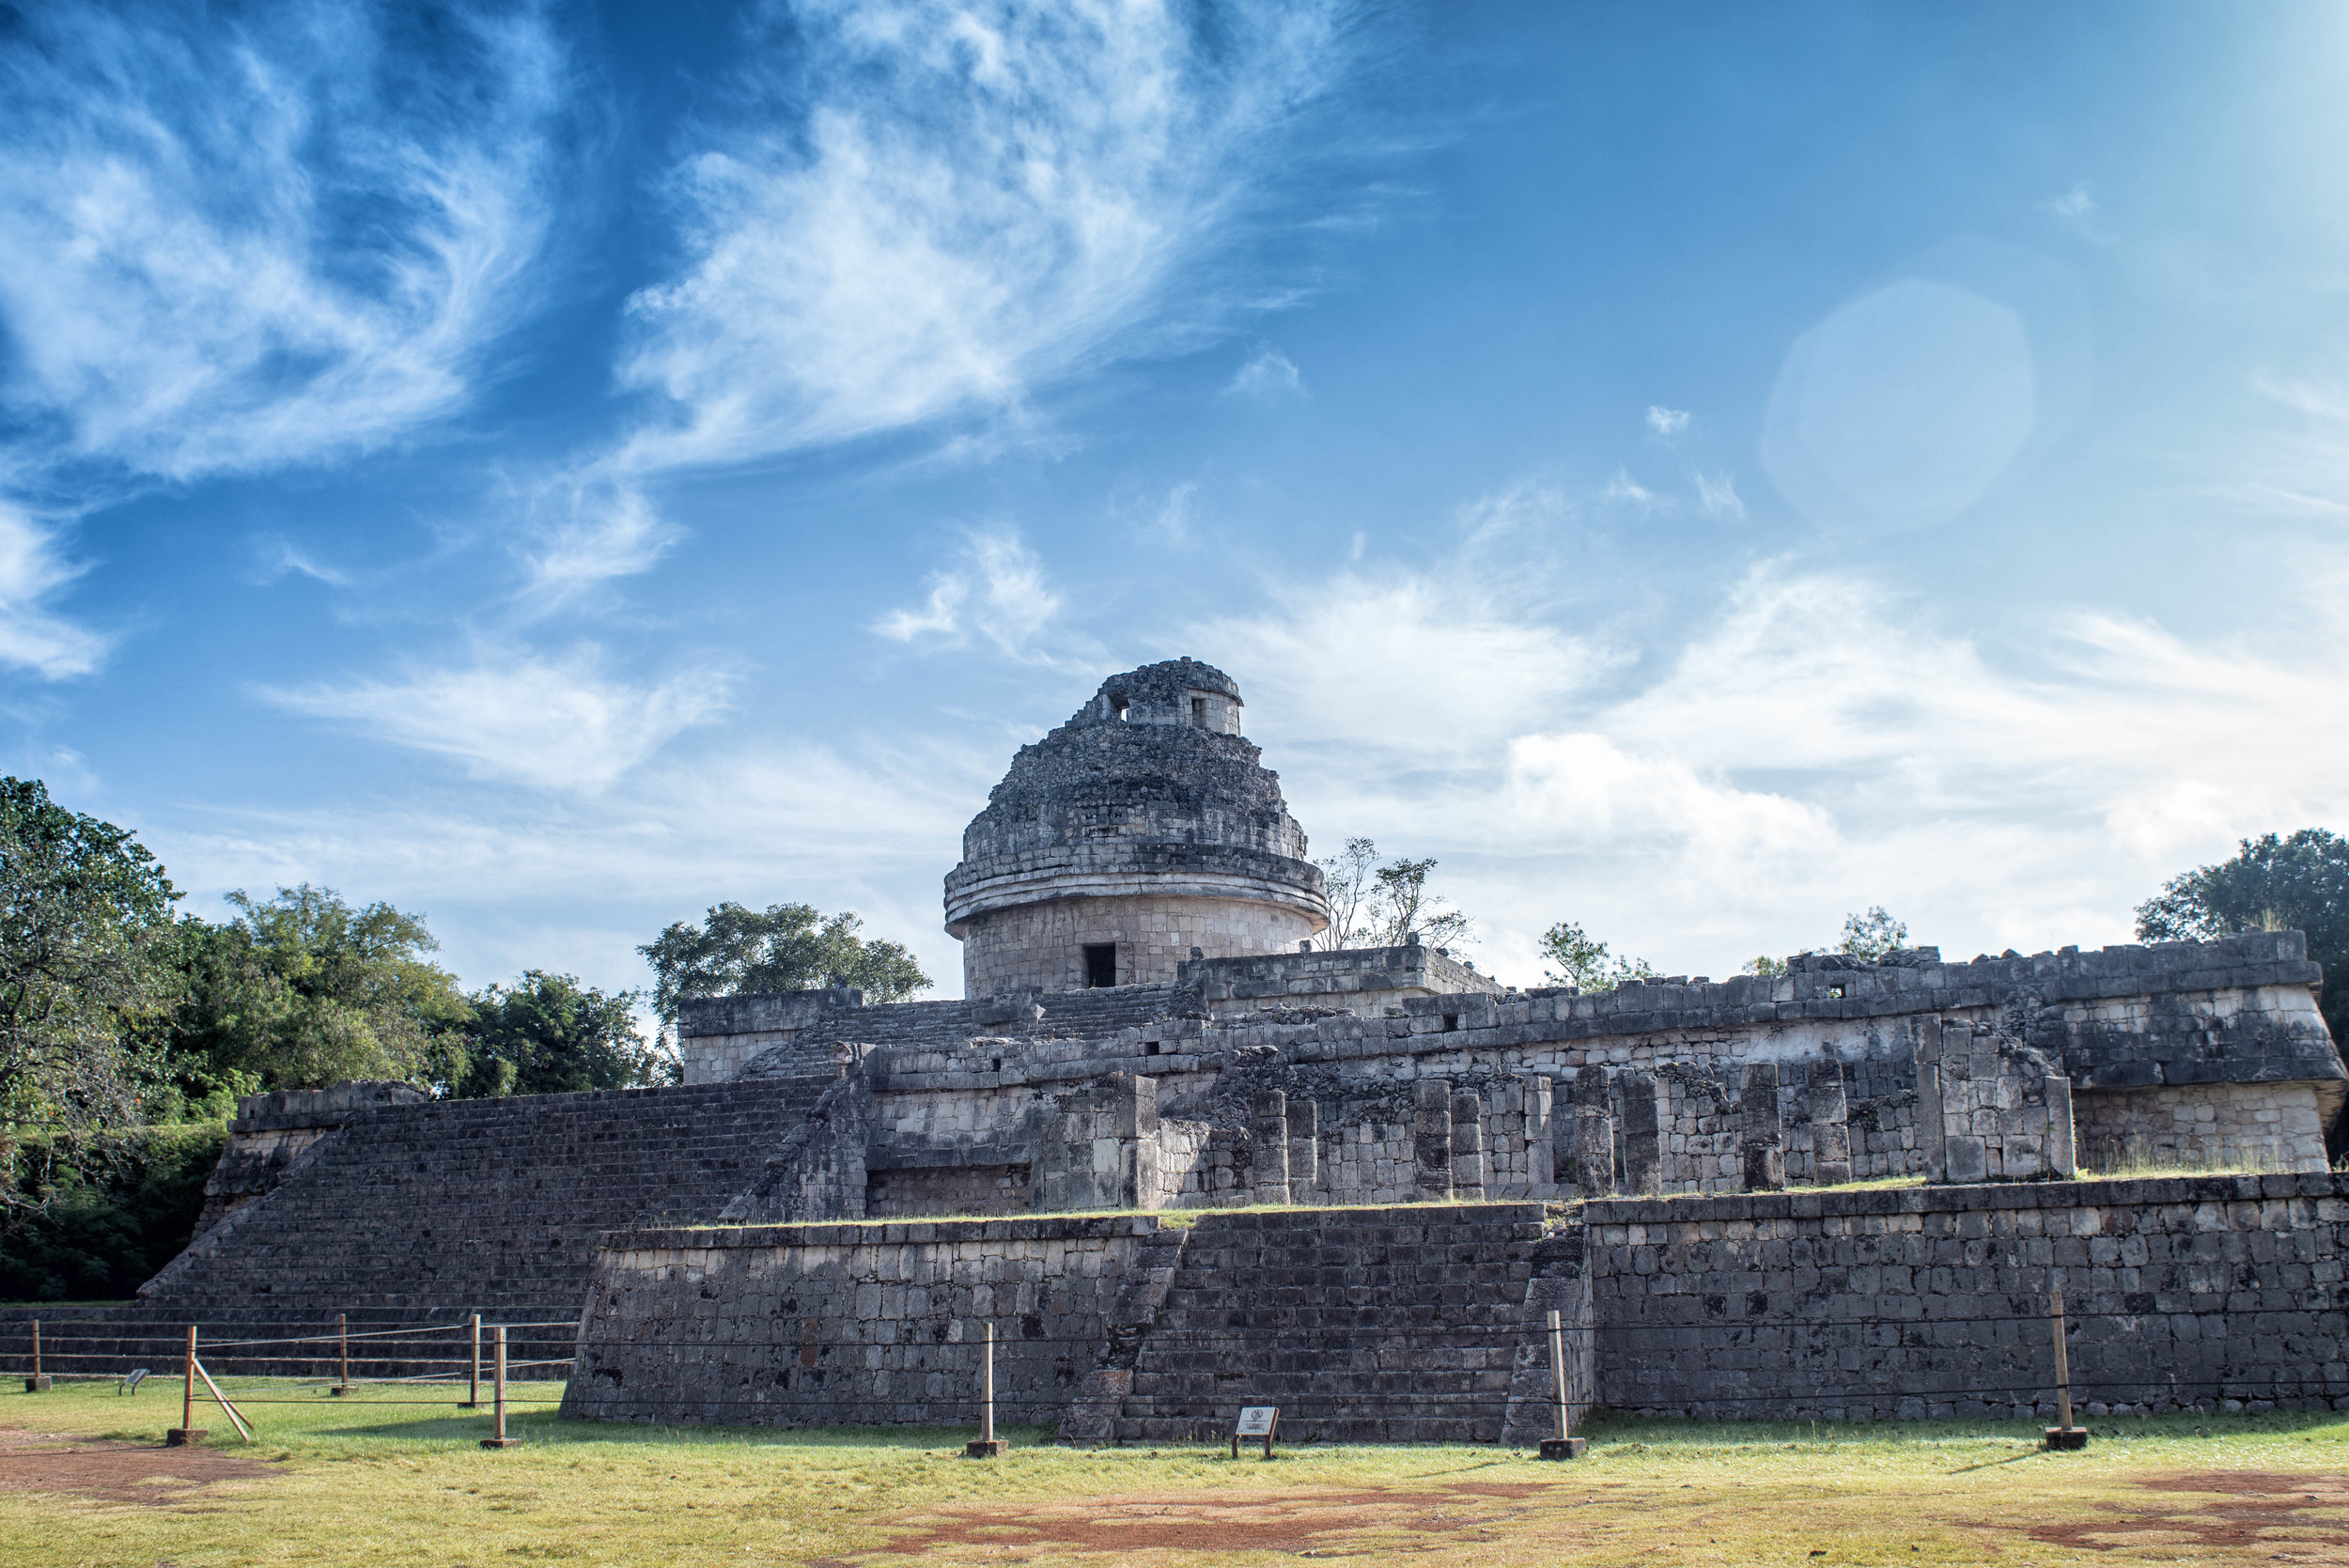 The Observatory, Chichen Itza Archeological Site